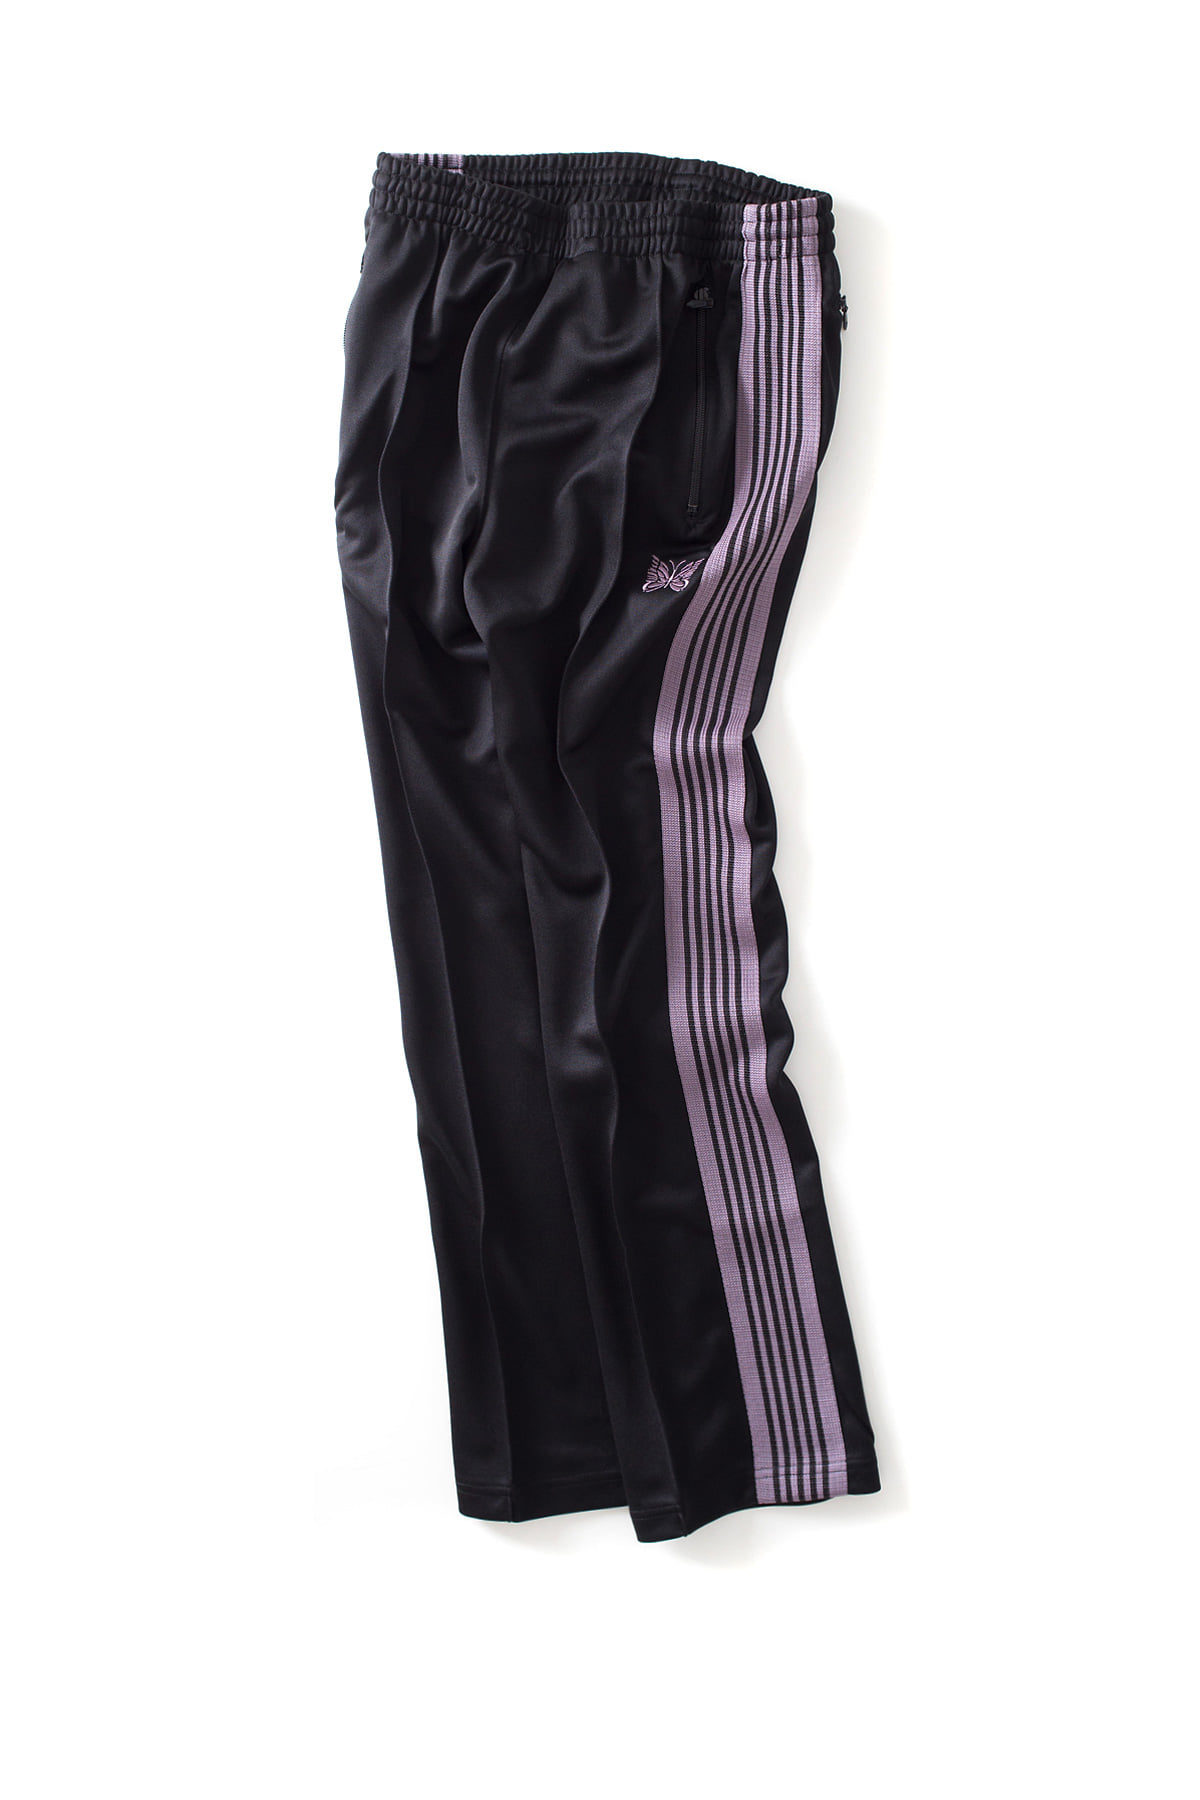 NEEDLES : Narrow Track Pants (Black)